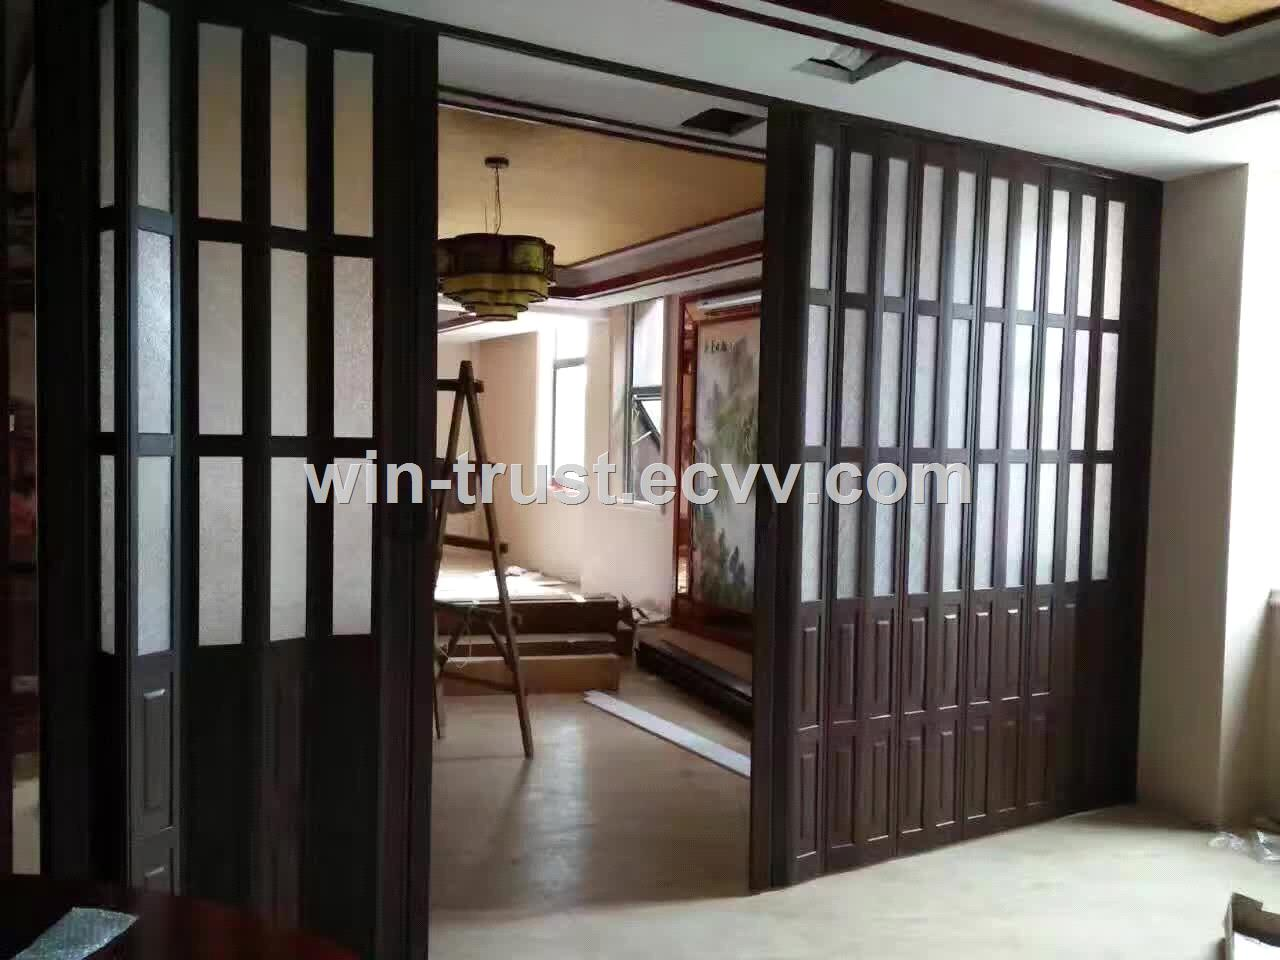 Commercial accordion folding doors frameless polycarbonate folding door pvc folding door for Commercial accordion doors interior